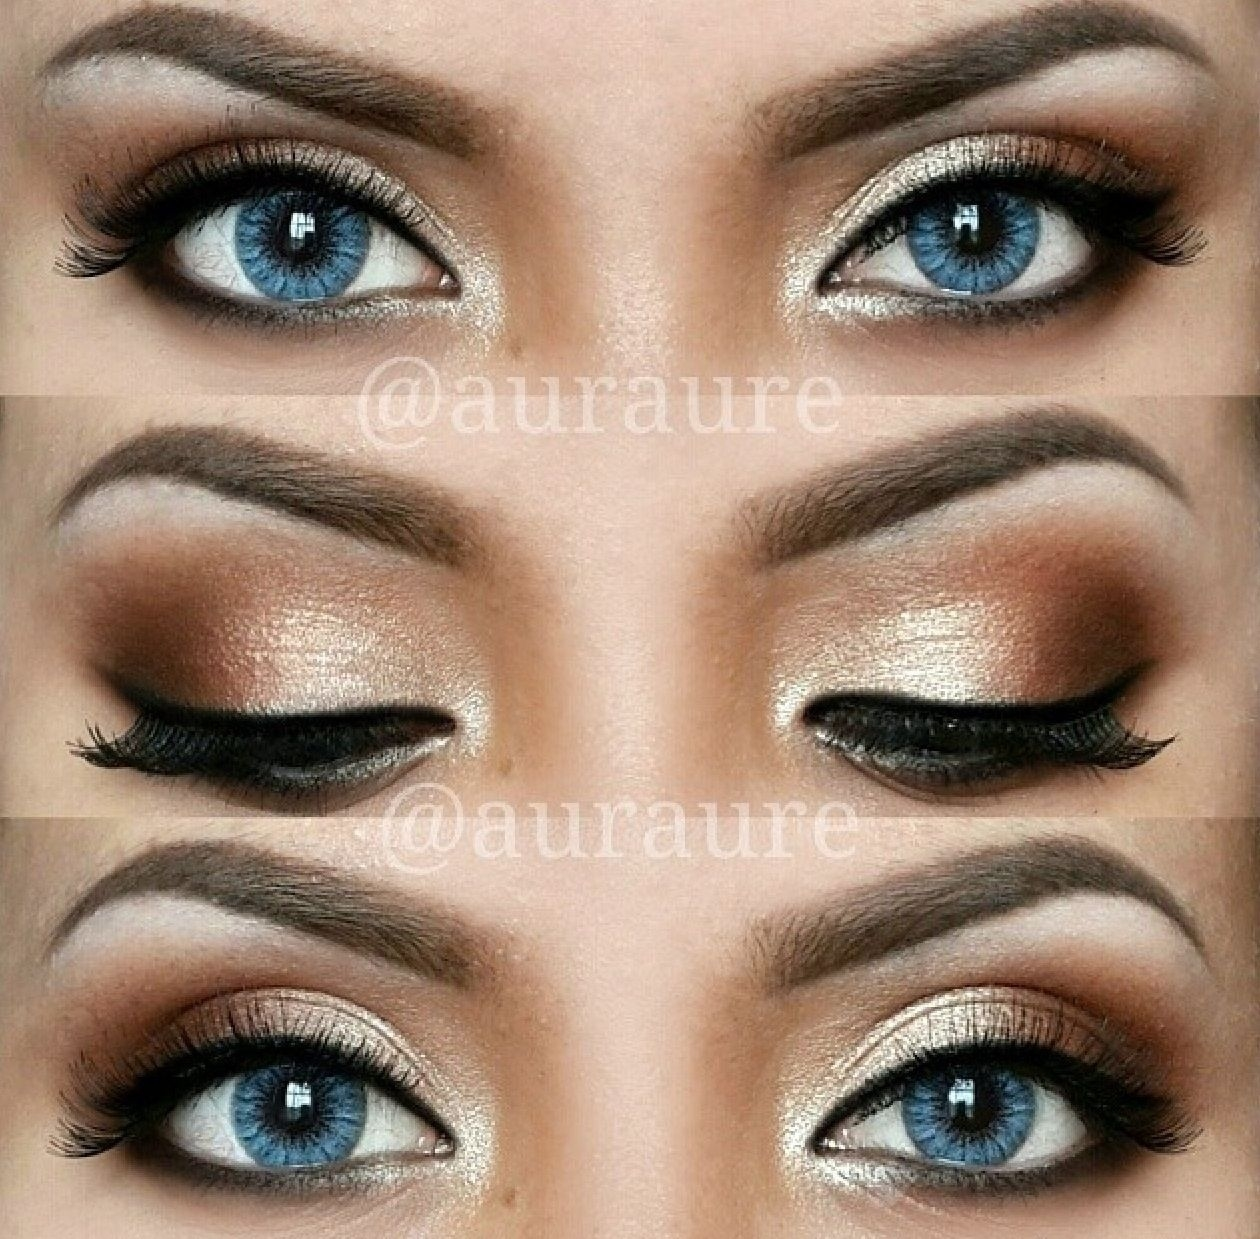 12 Easy Ideas For Prom Makeup For Blue Eyes   Hair And Makeup with Makeup Ideas For Blue Eyes